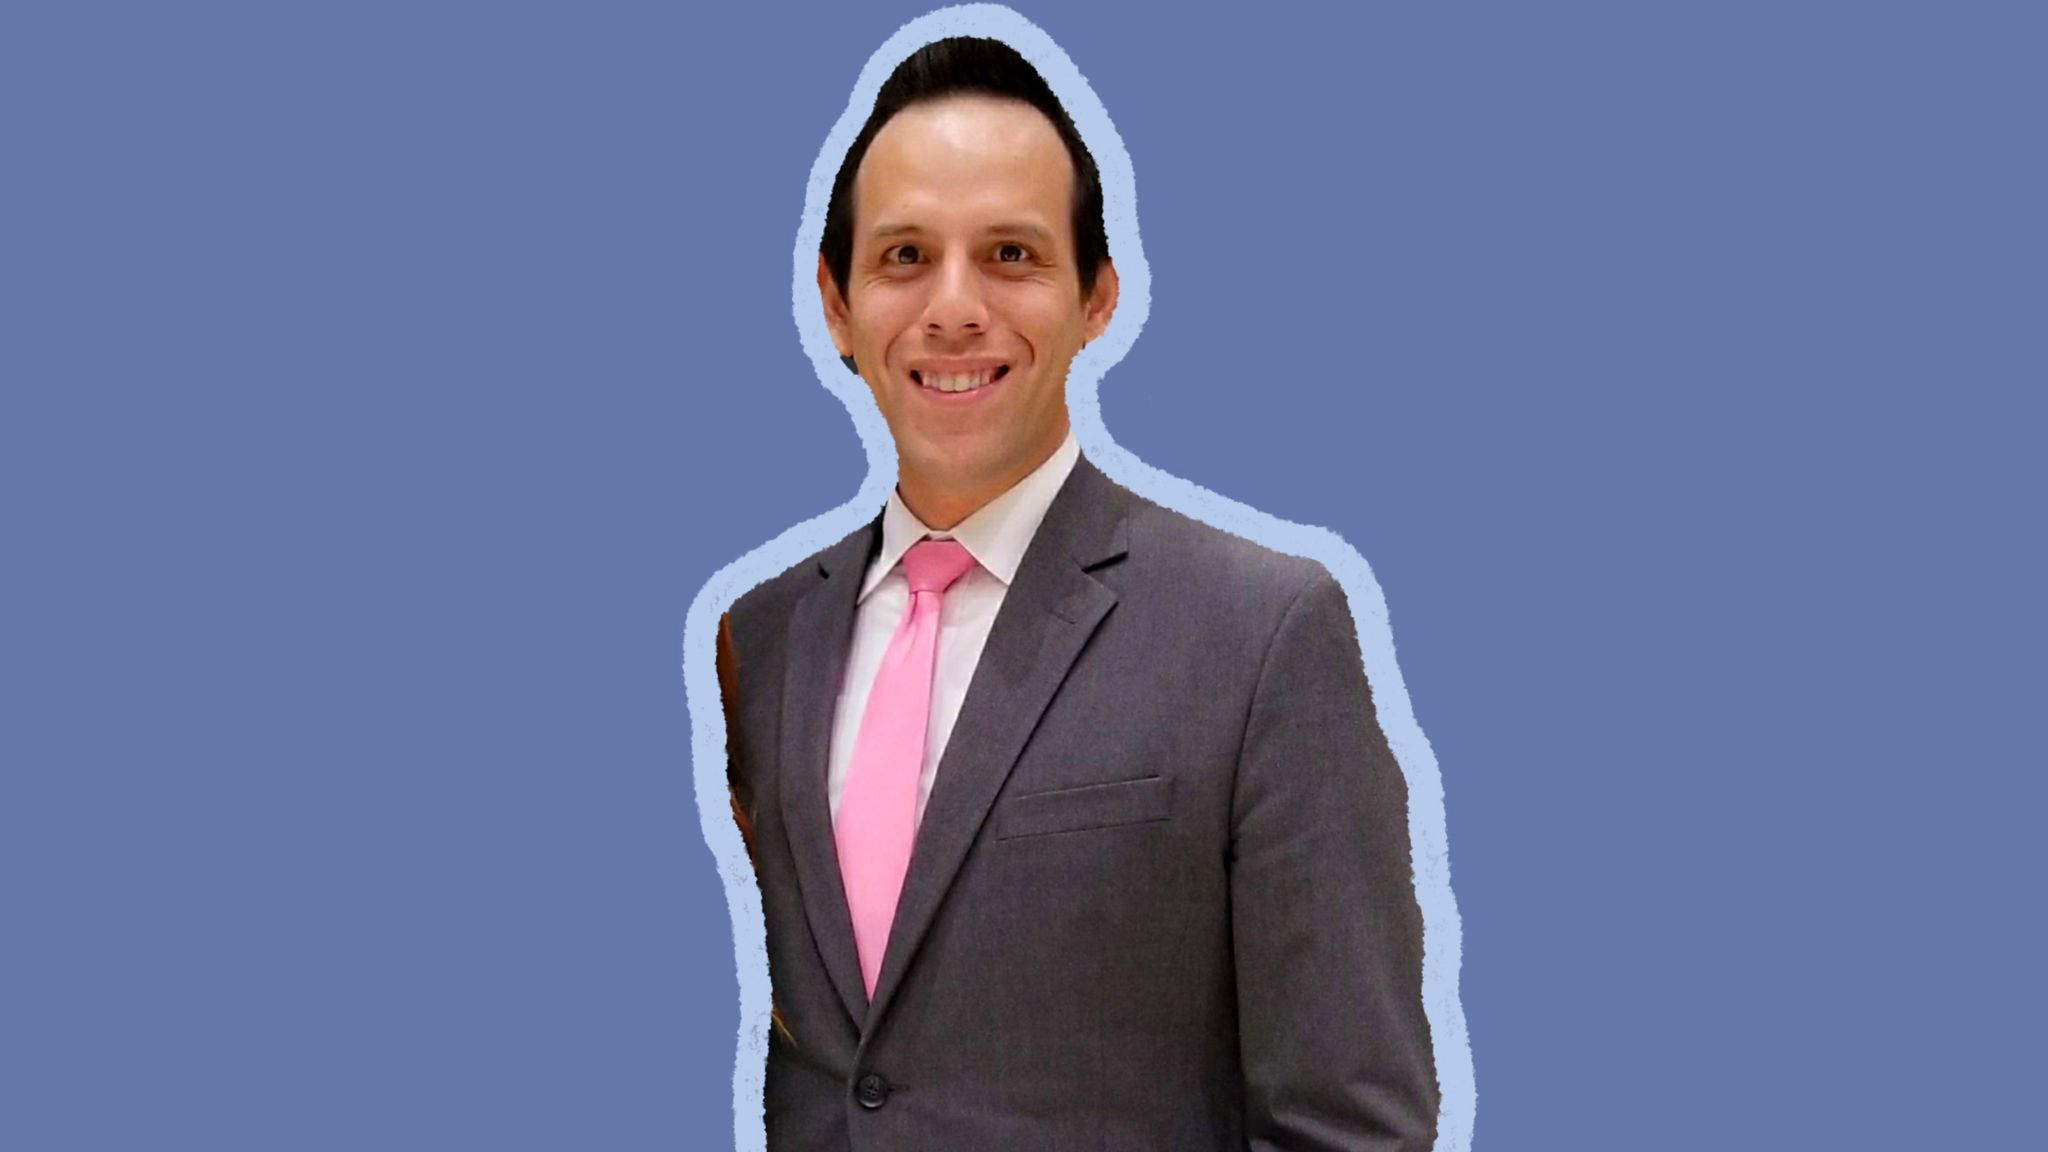 Brett Chapman standing with a suit and tie, and plain blue background